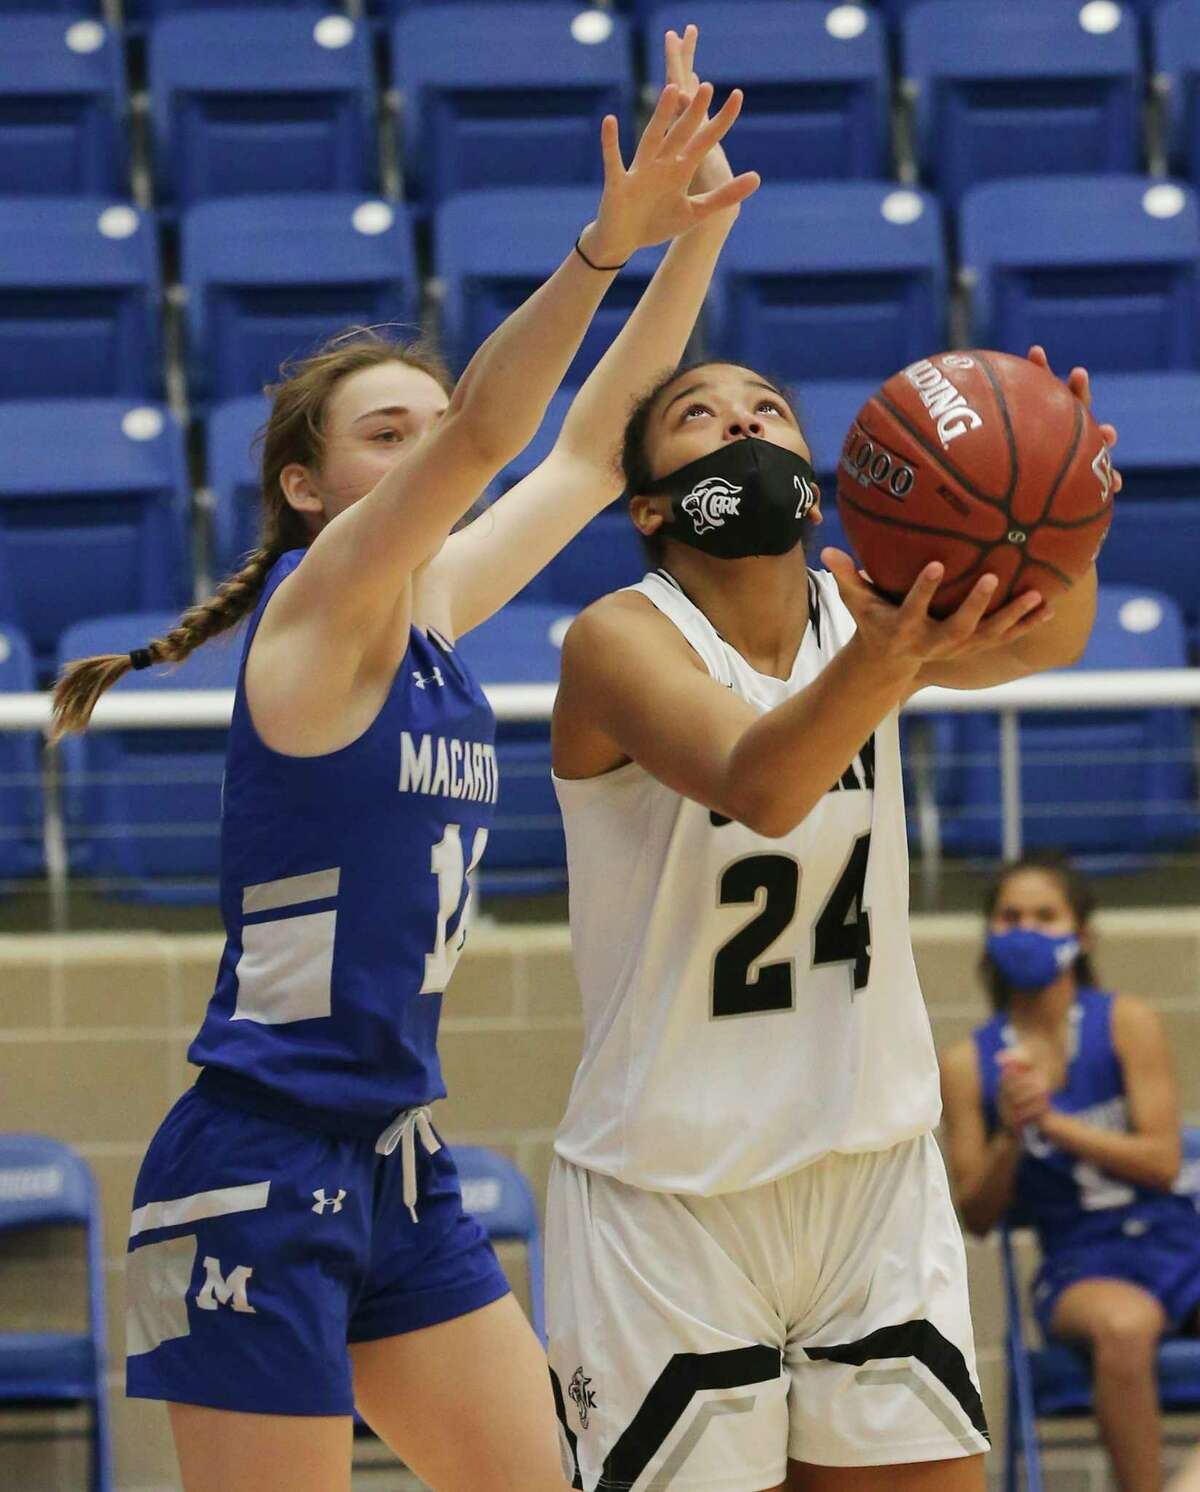 Clark's Aaliyah Roberson (24) looks to score against MacArthur's Nicole Wallace (12) in girls basketball at Northside Sports Gym on Friday, Jan. 29, 2021. The Cougars defeated the Brahmas, 58-34, to advance to the next round.